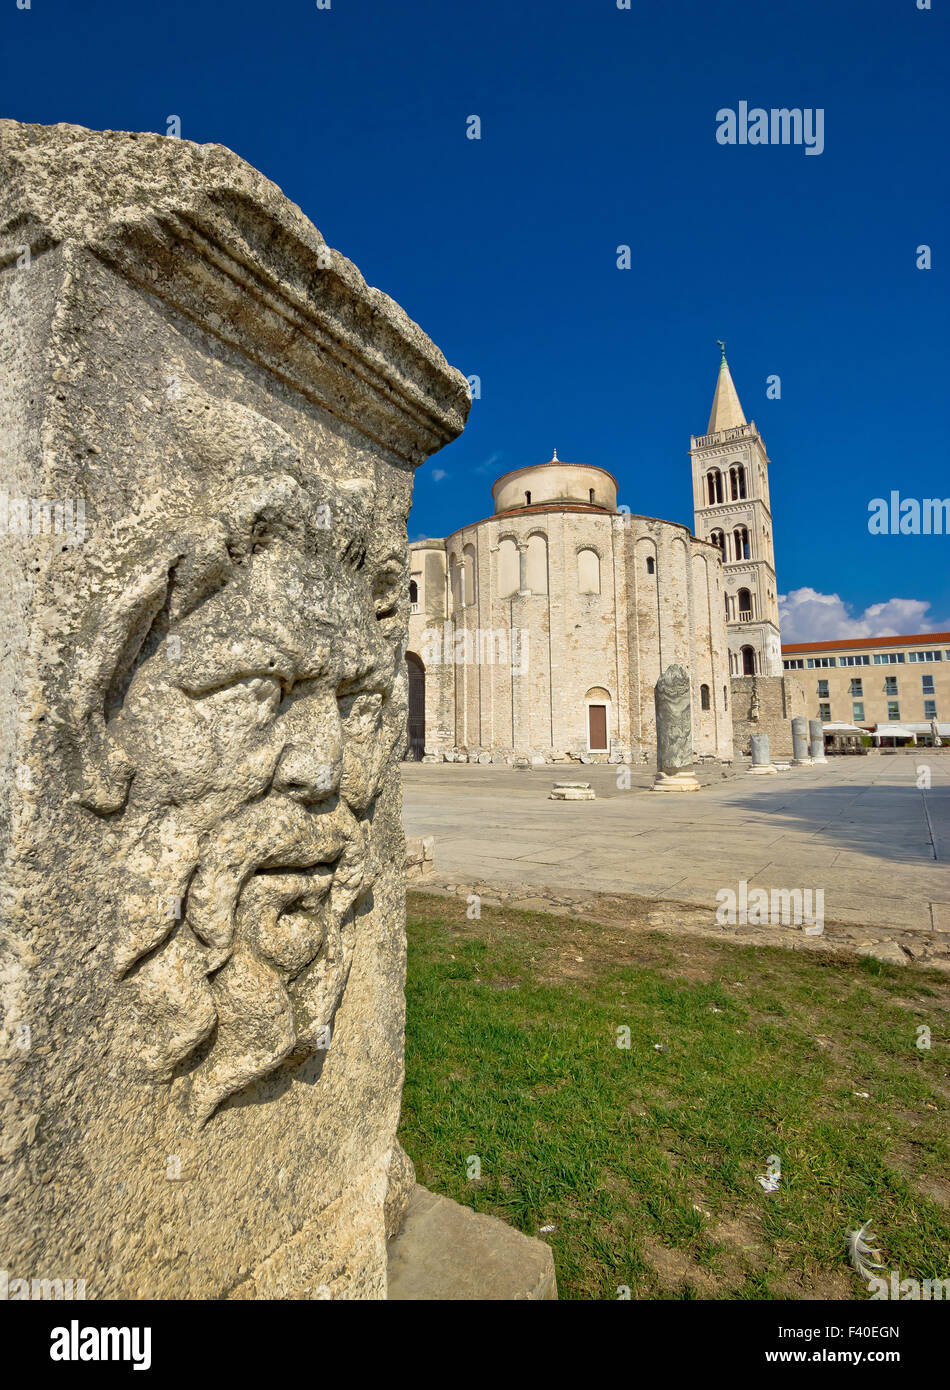 Zadar old roman square artefacts - Stock Image